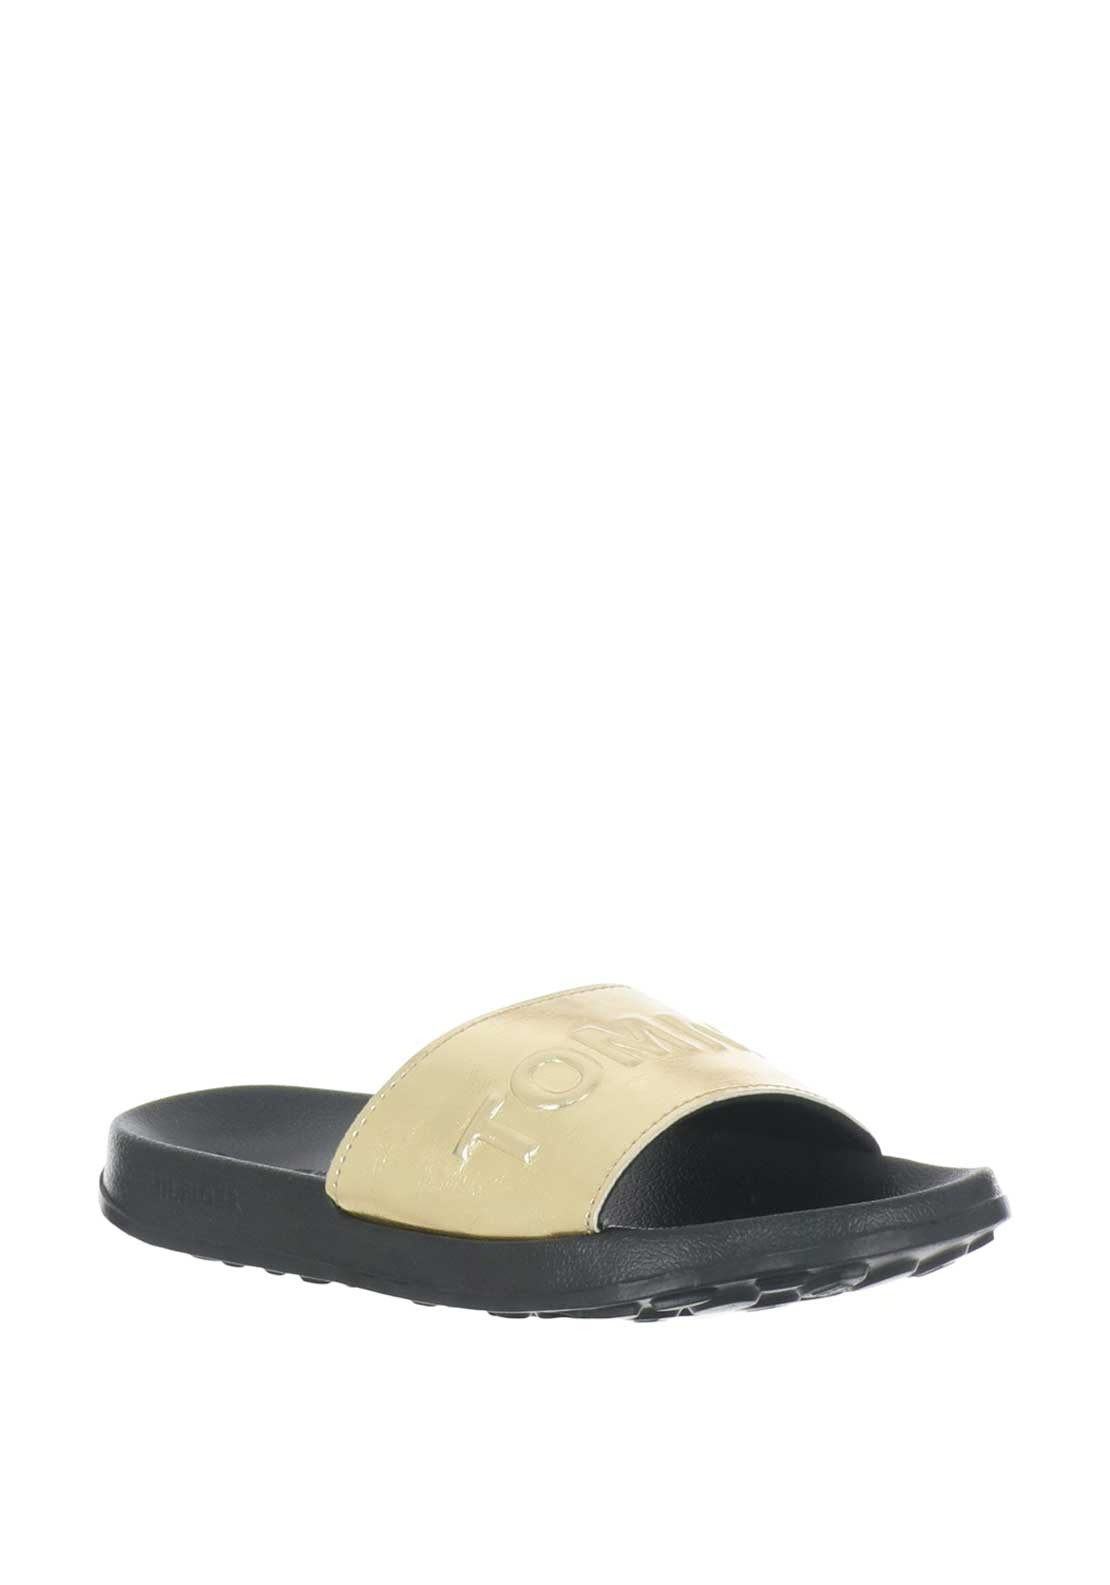 b956984e4 Tommy Jeans Metallic Pool Slider Sandals